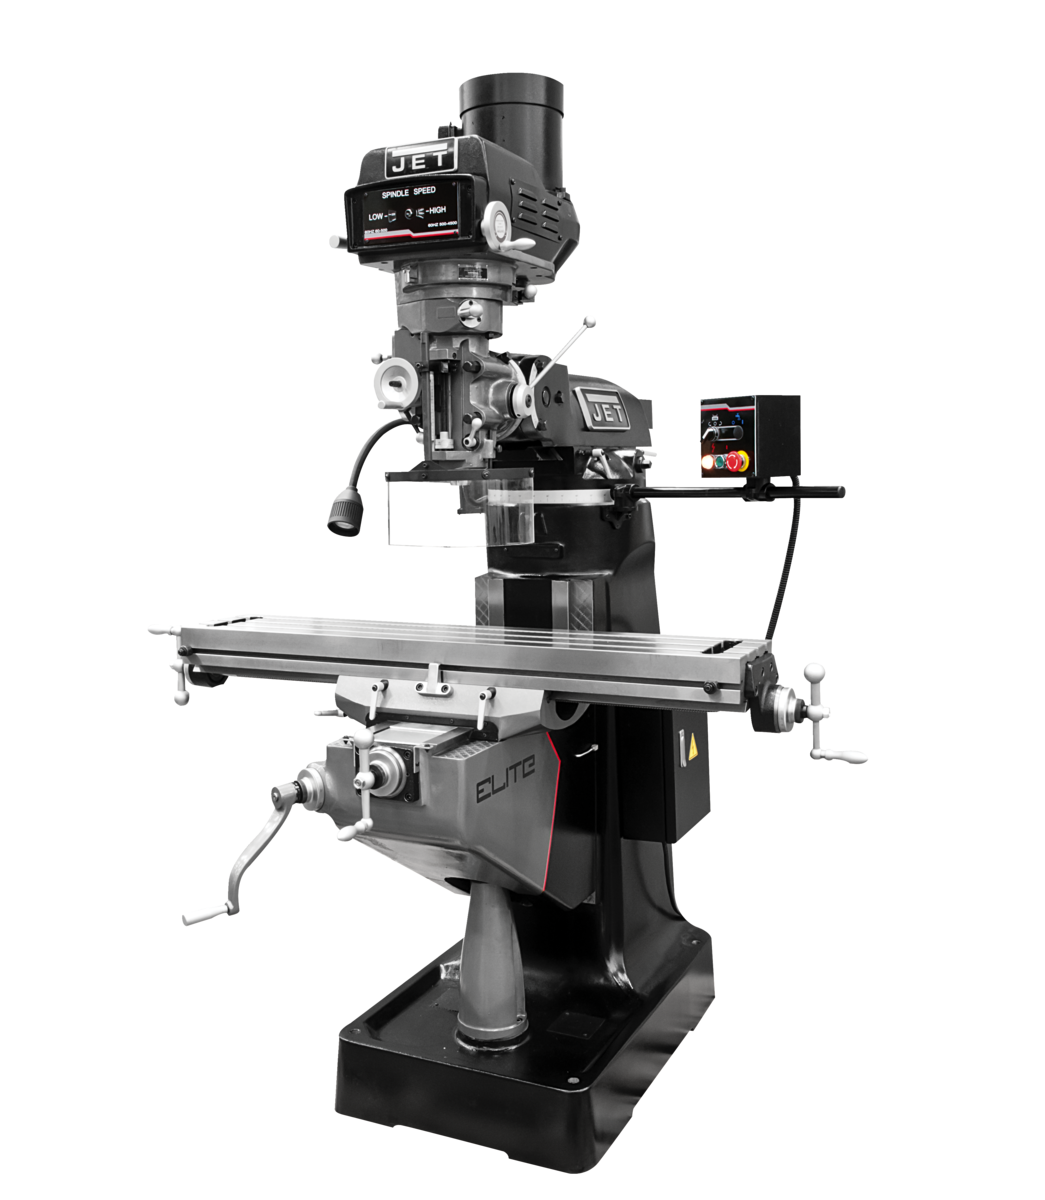 ETM-949 Mill with Servo X-Axis Powerfeed and USA Air Powered Draw Bar